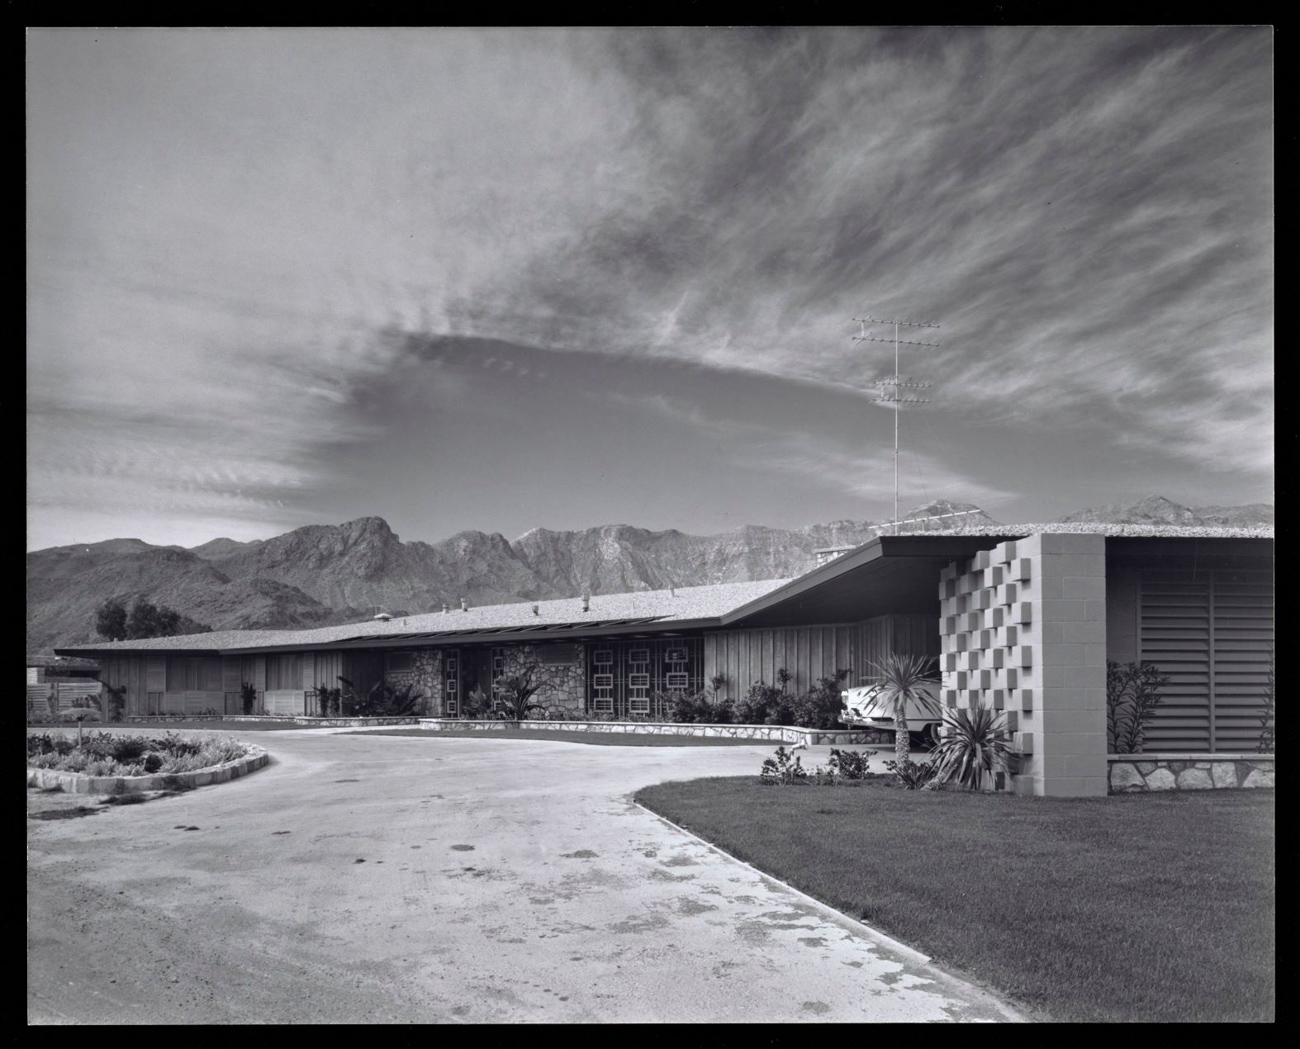 A long, single story ranch house. Driveway in the foreground, mountains and expansive sky in the background.